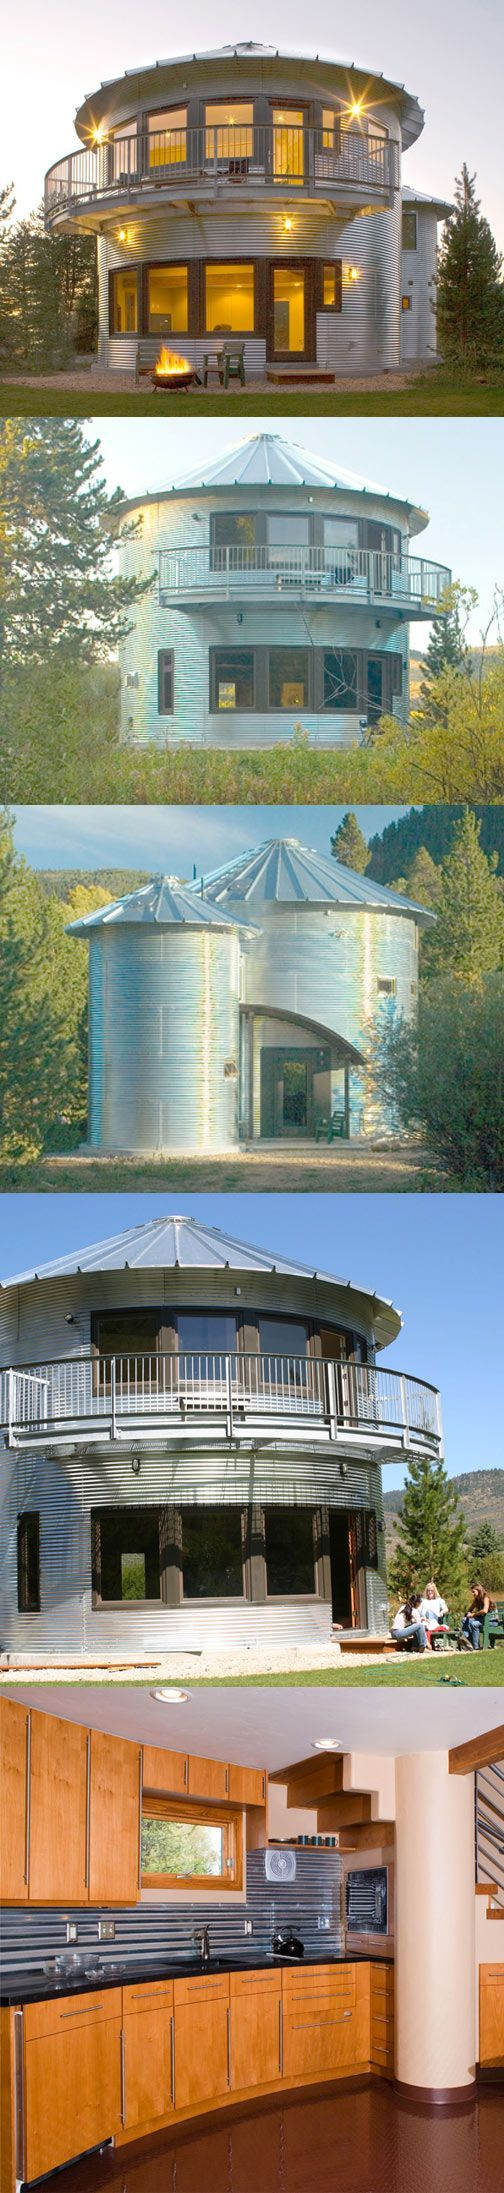 DIY Grain bin house Interior Plans Tiny Homes in Grain bin house Layout Awesome Grain bin house Insulation Pictures Building Grain bin house Bedrooms Design Grain bin house Magnolia Market Dining Rooms and Grain bin house Kitchen Ideas Small Grain bin house Shelves